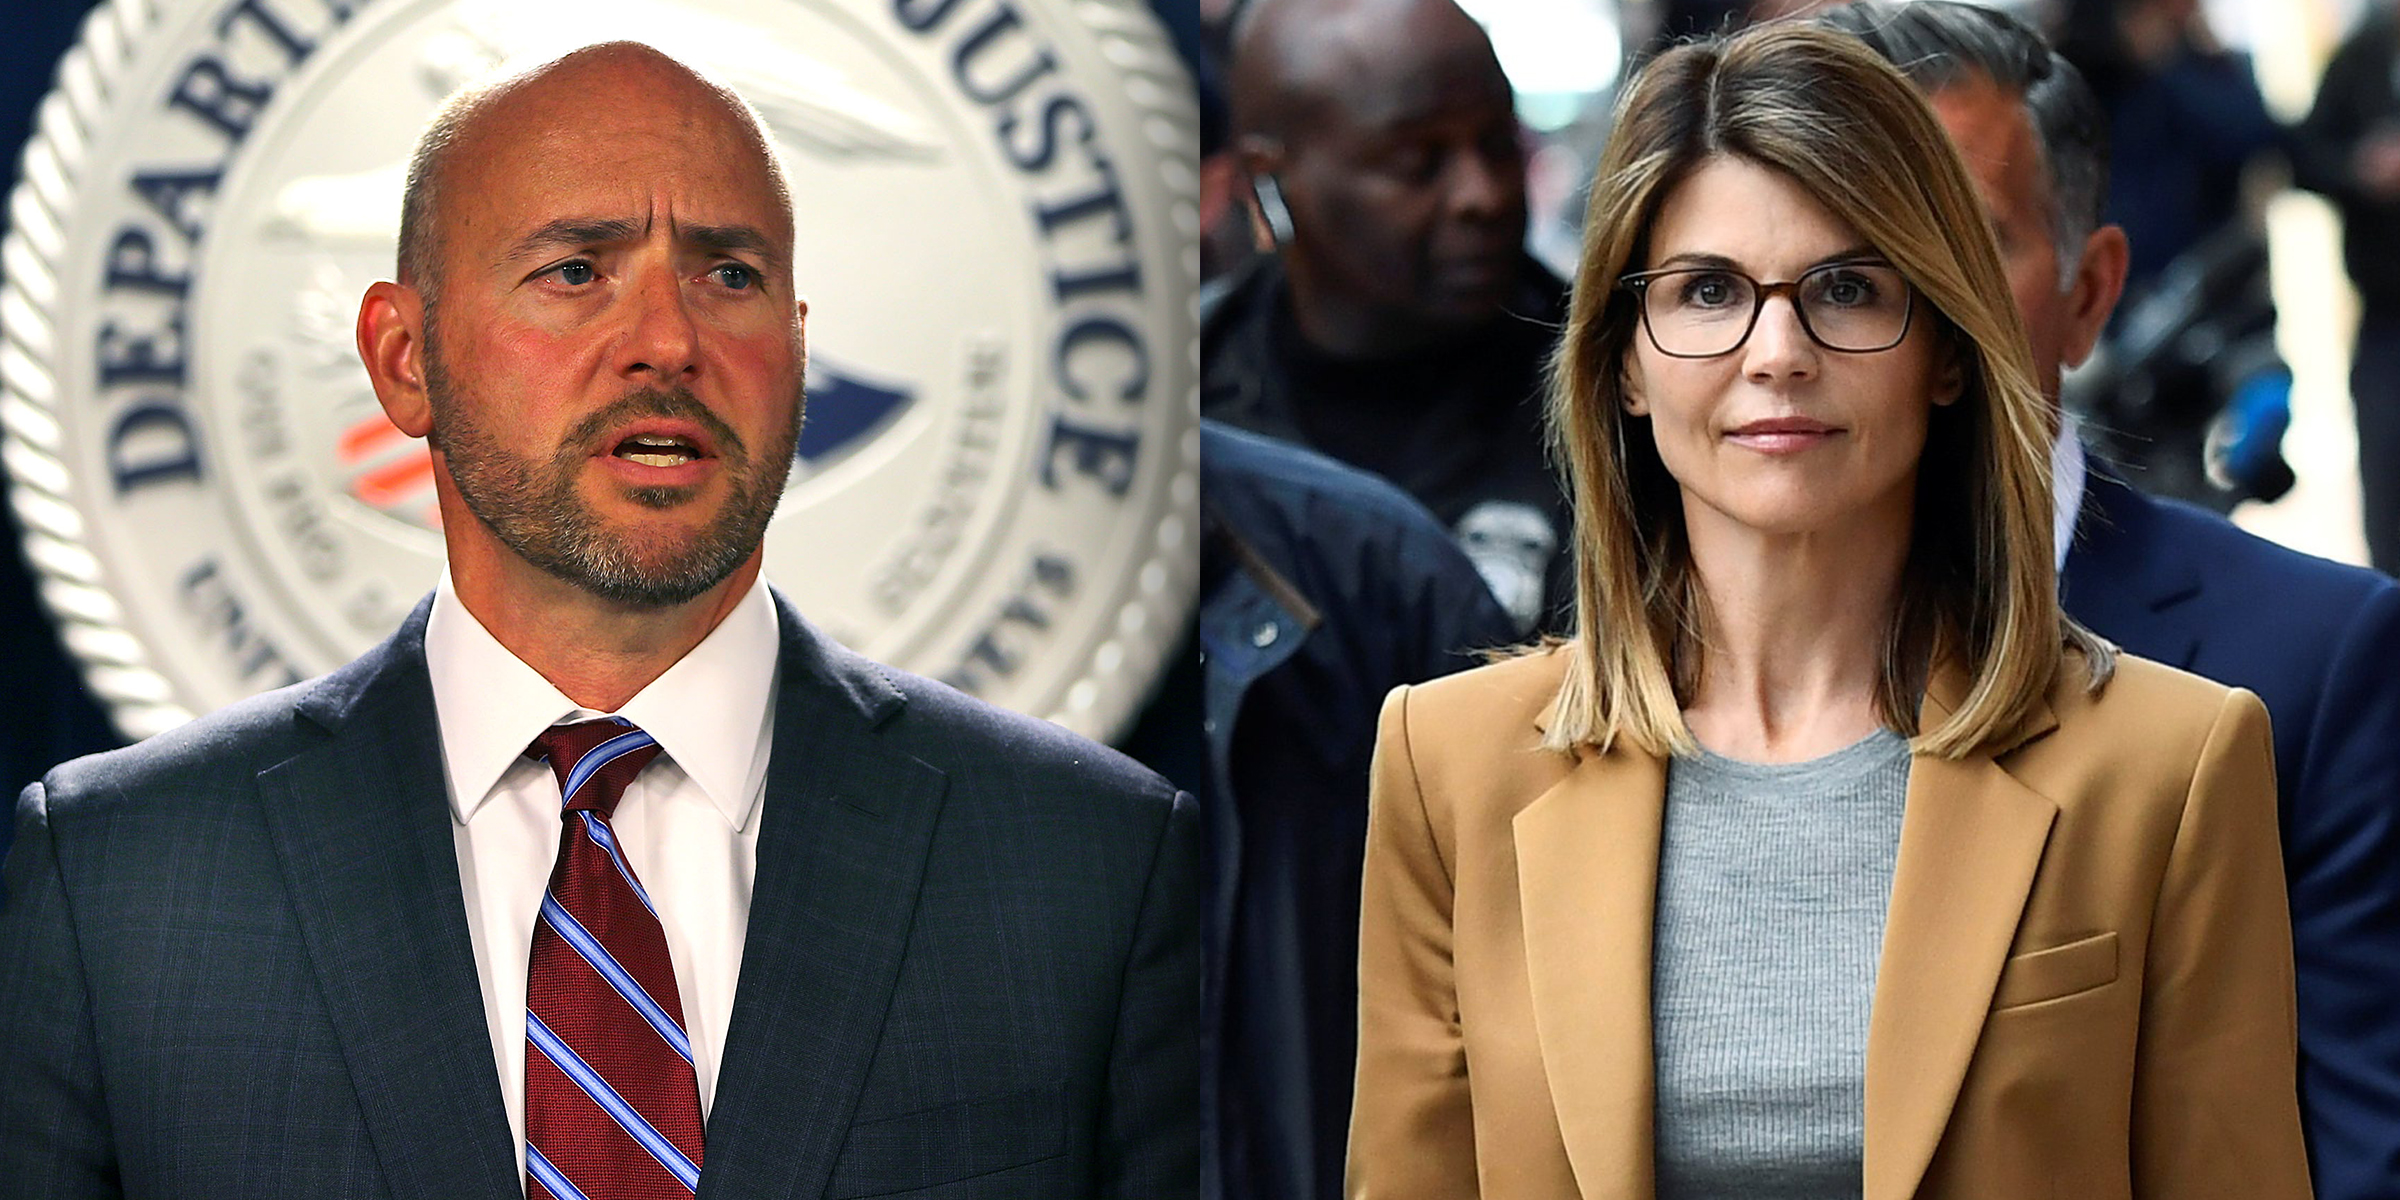 College admissions scam prosecutor speaks out on what's ahead for Lori Loughlin